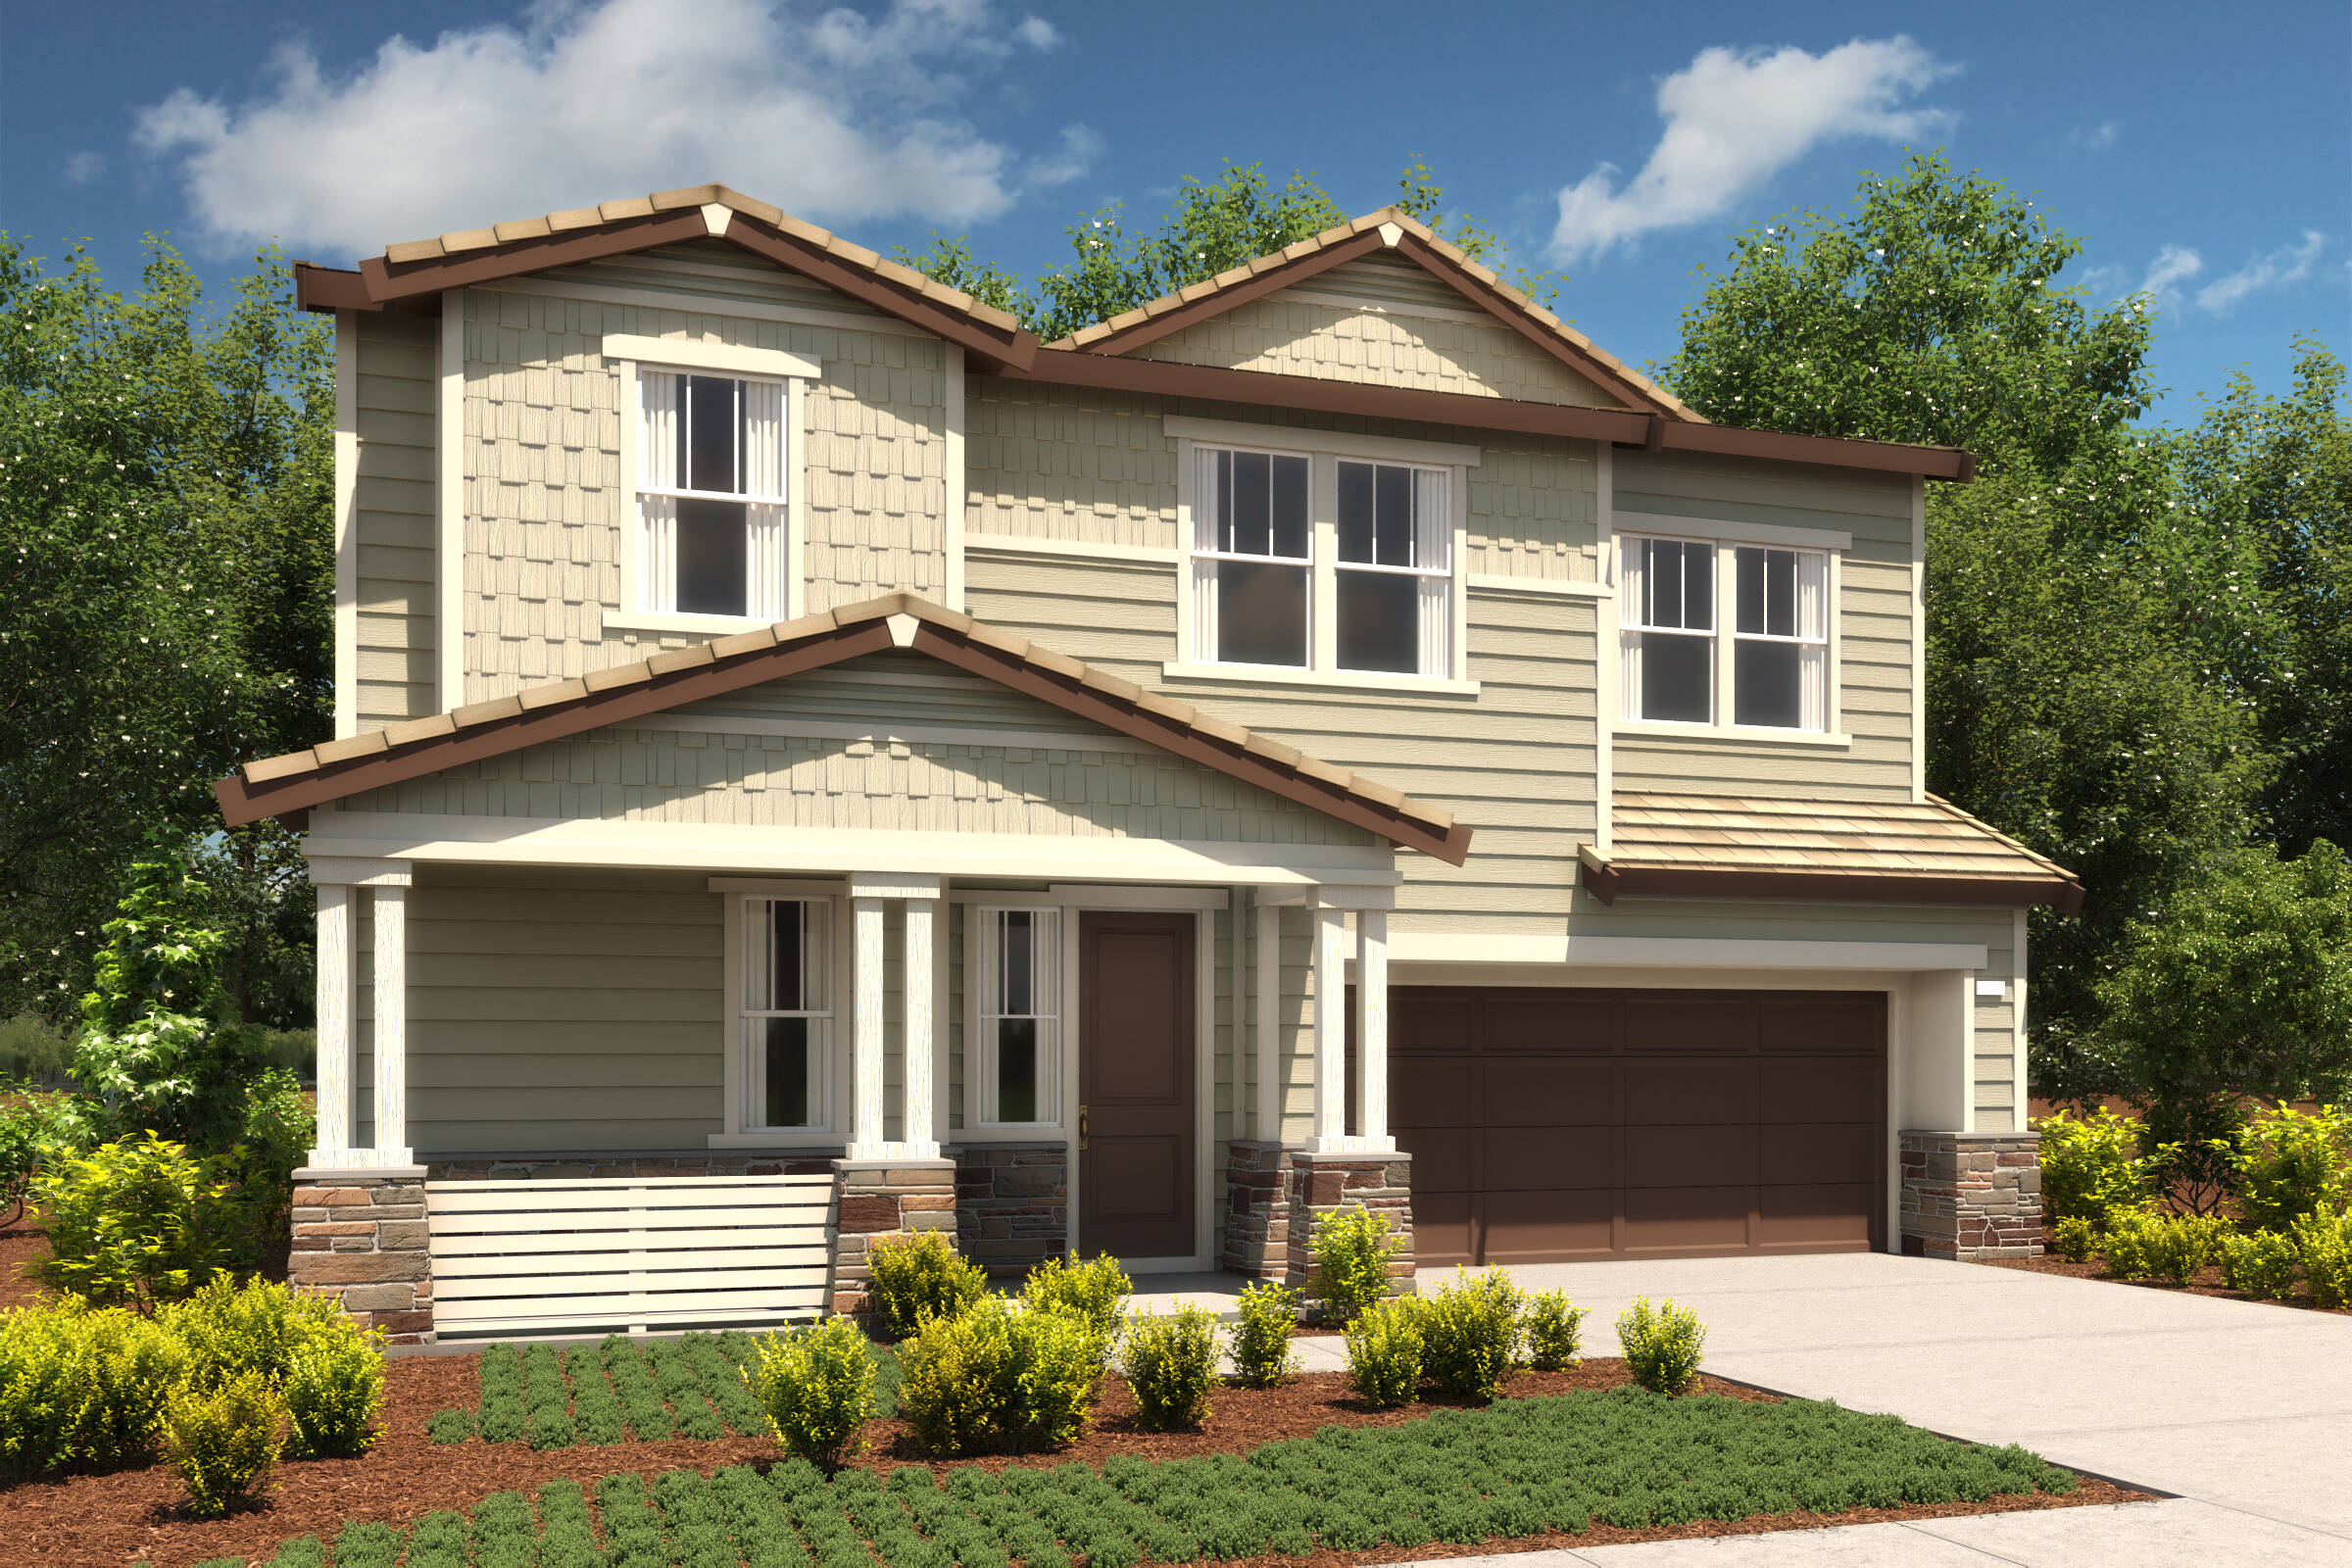 4079-triumph-a-craftsman-new homes-2700 empire-elev